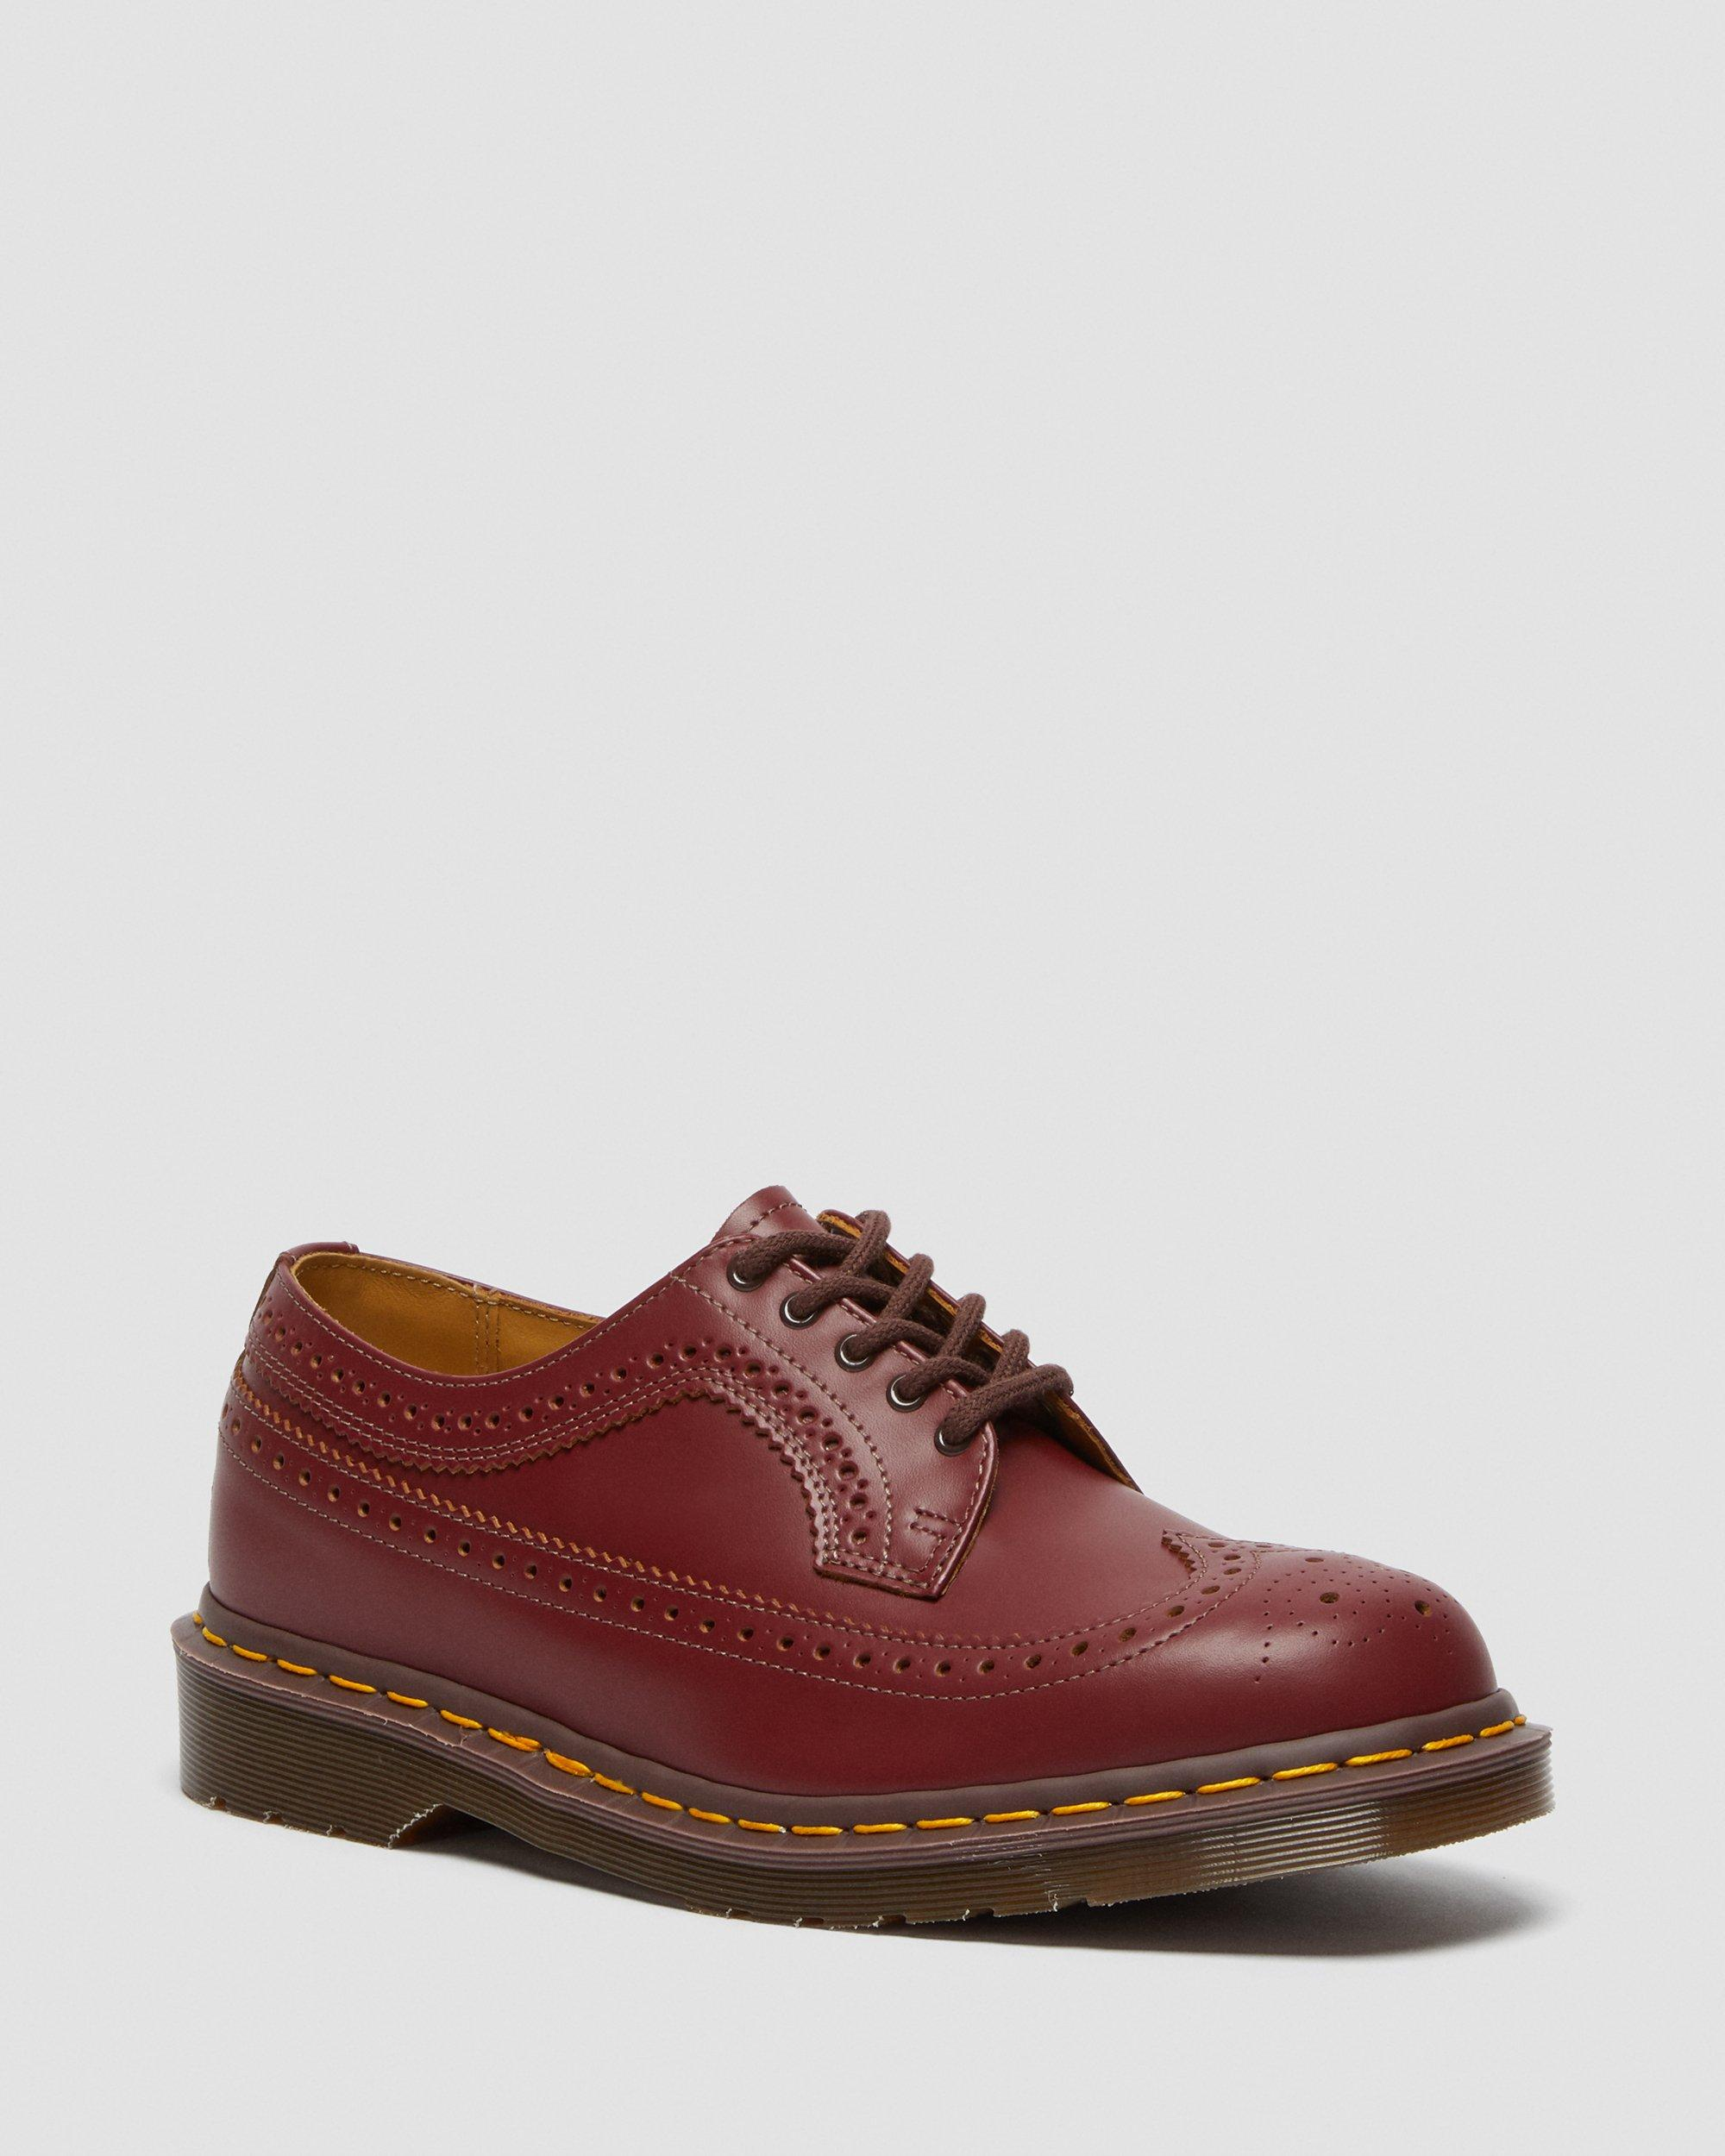 DR MARTENS 3989 VINTAGE MADE IN ENGLAND BROGUE SHOES